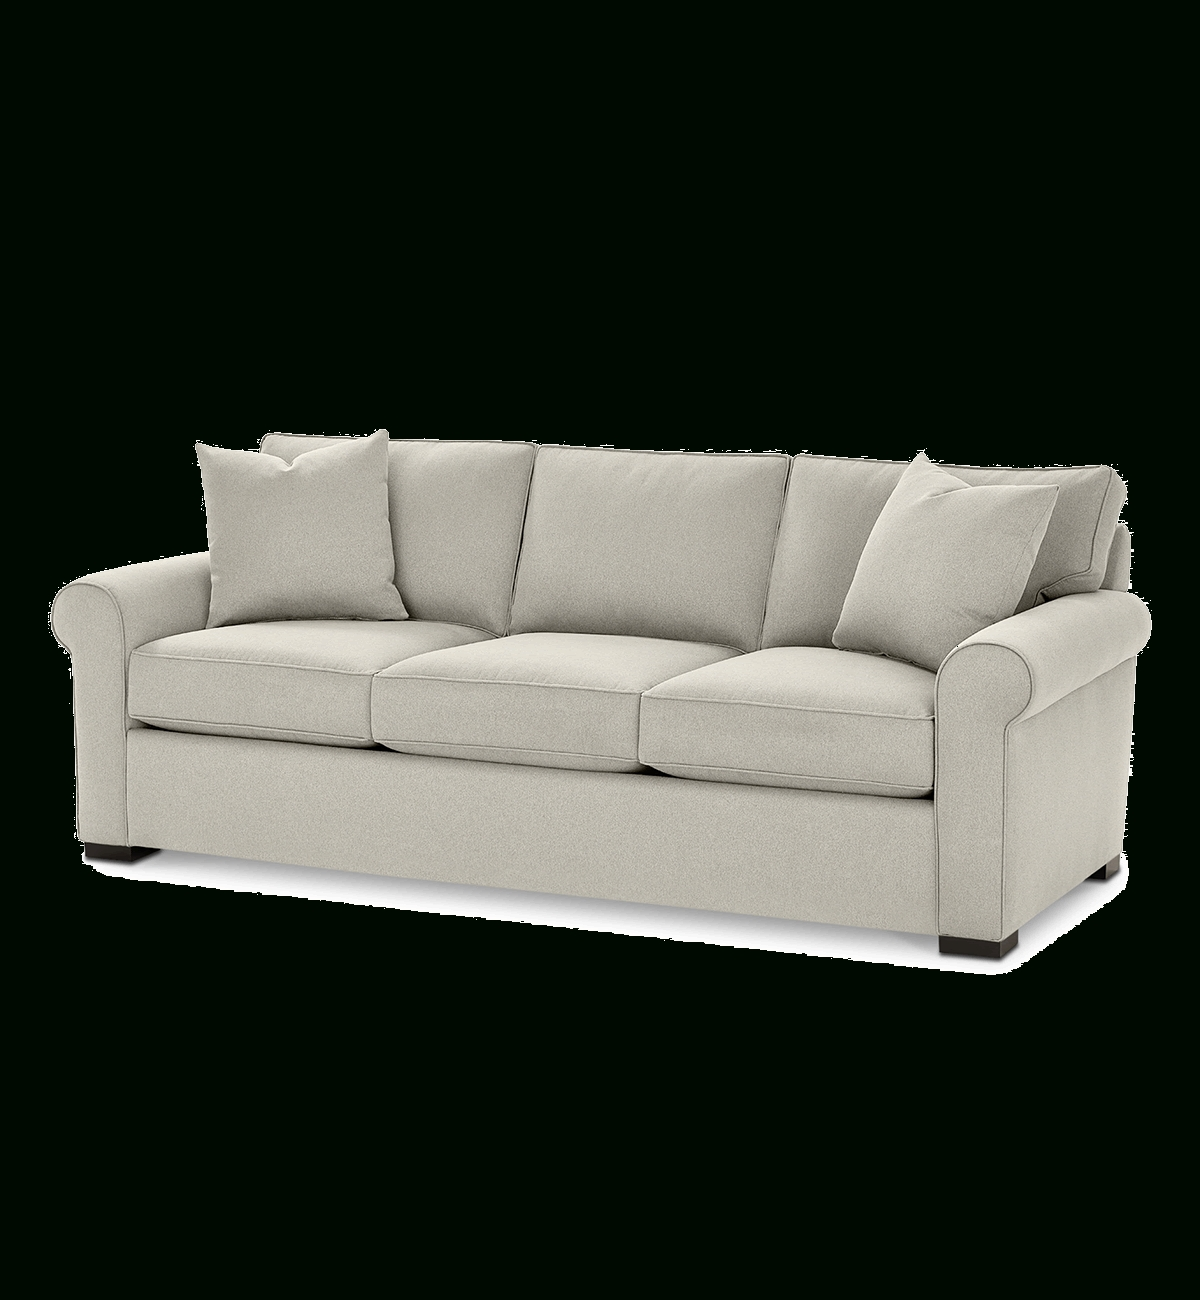 Most Recently Released Macys Sectional Sofas Within Sectional Sofas Couches And Sofas – Macy's (View 19 of 20)